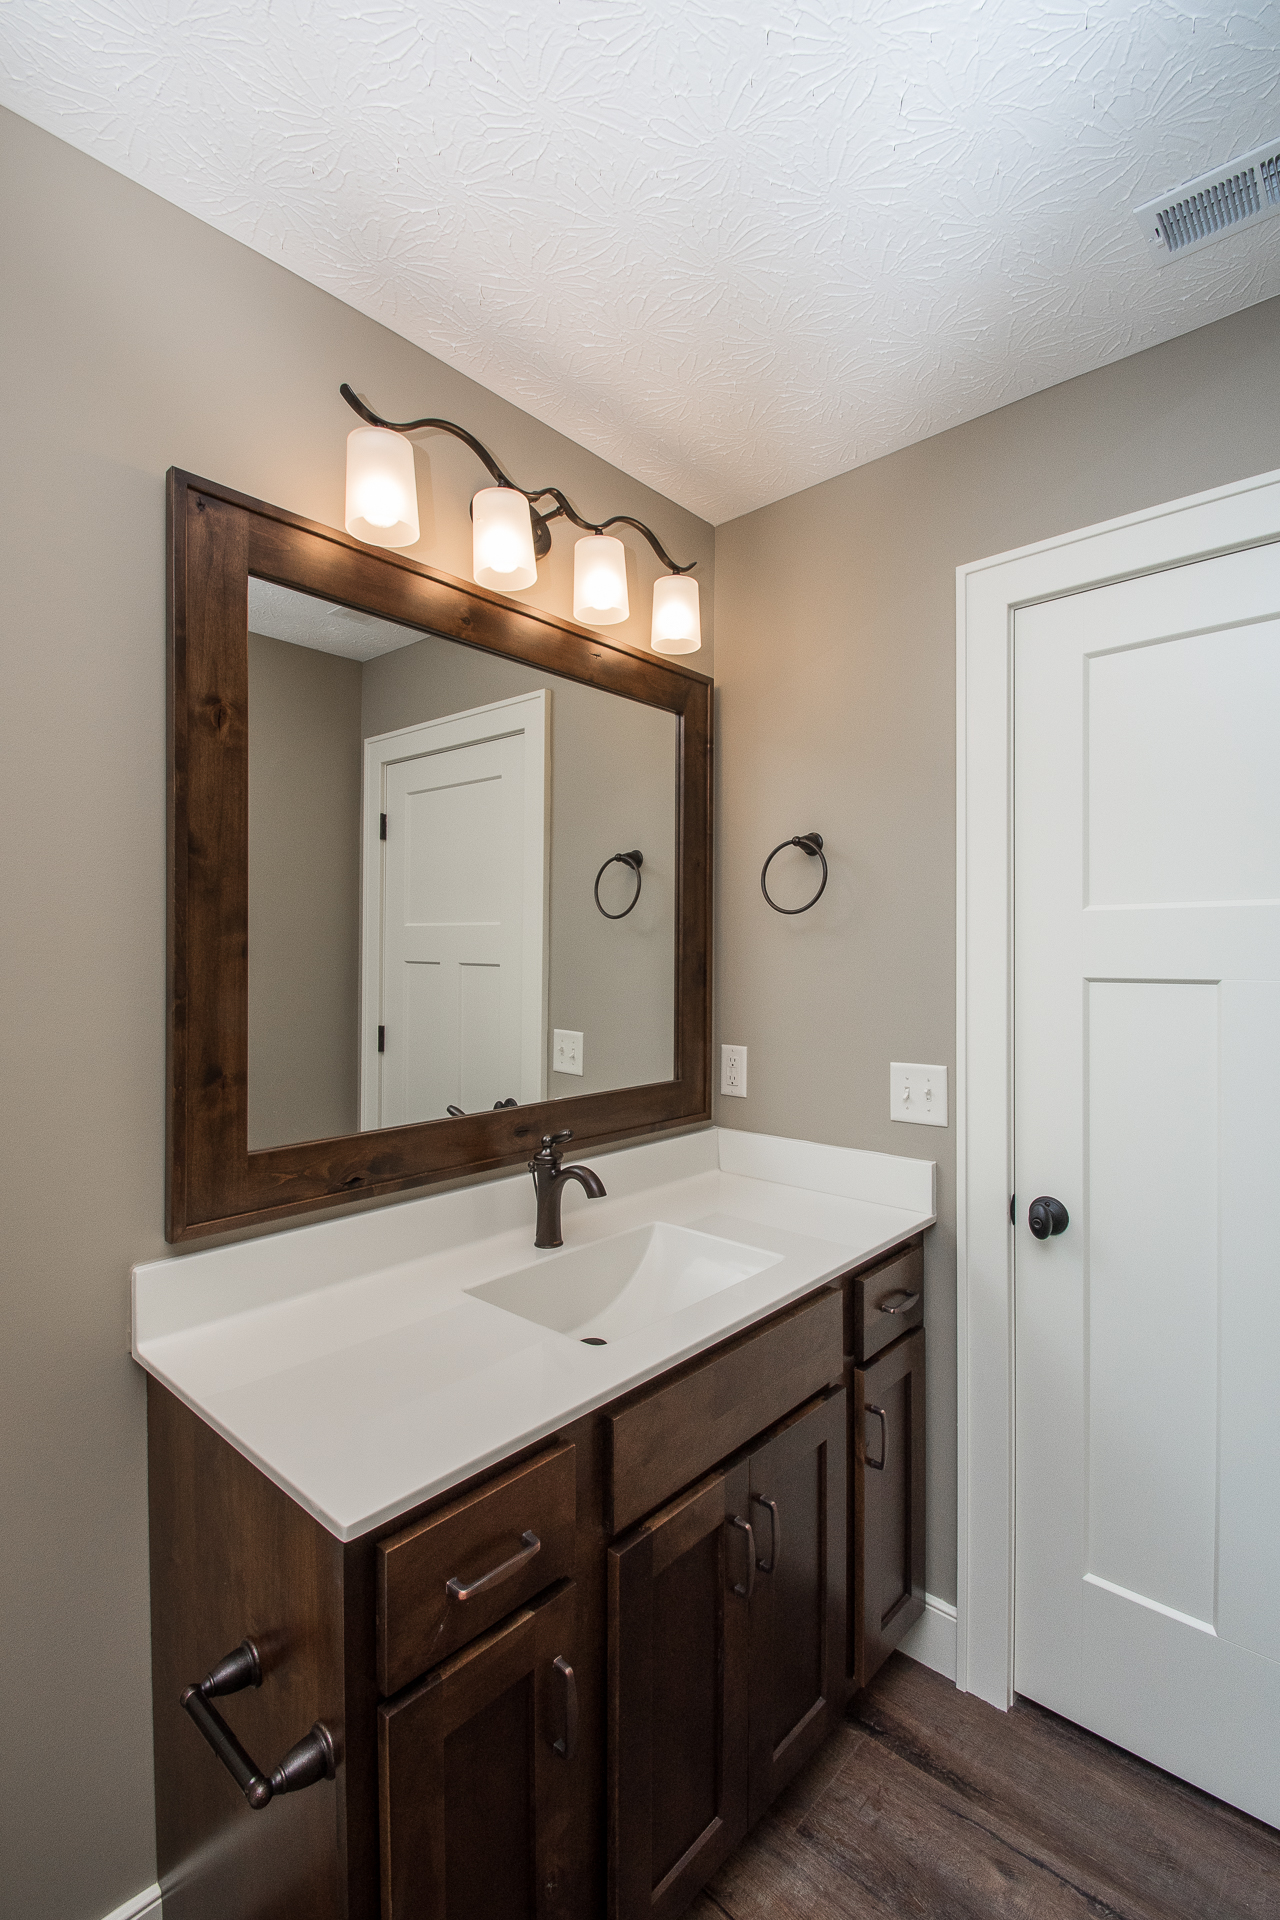 Rustic Birch Windsor in Mocha cabinets with one-pc cultured marble top in #43 biscuit features wave bowl and Brantford oil rubbed bronze faucet